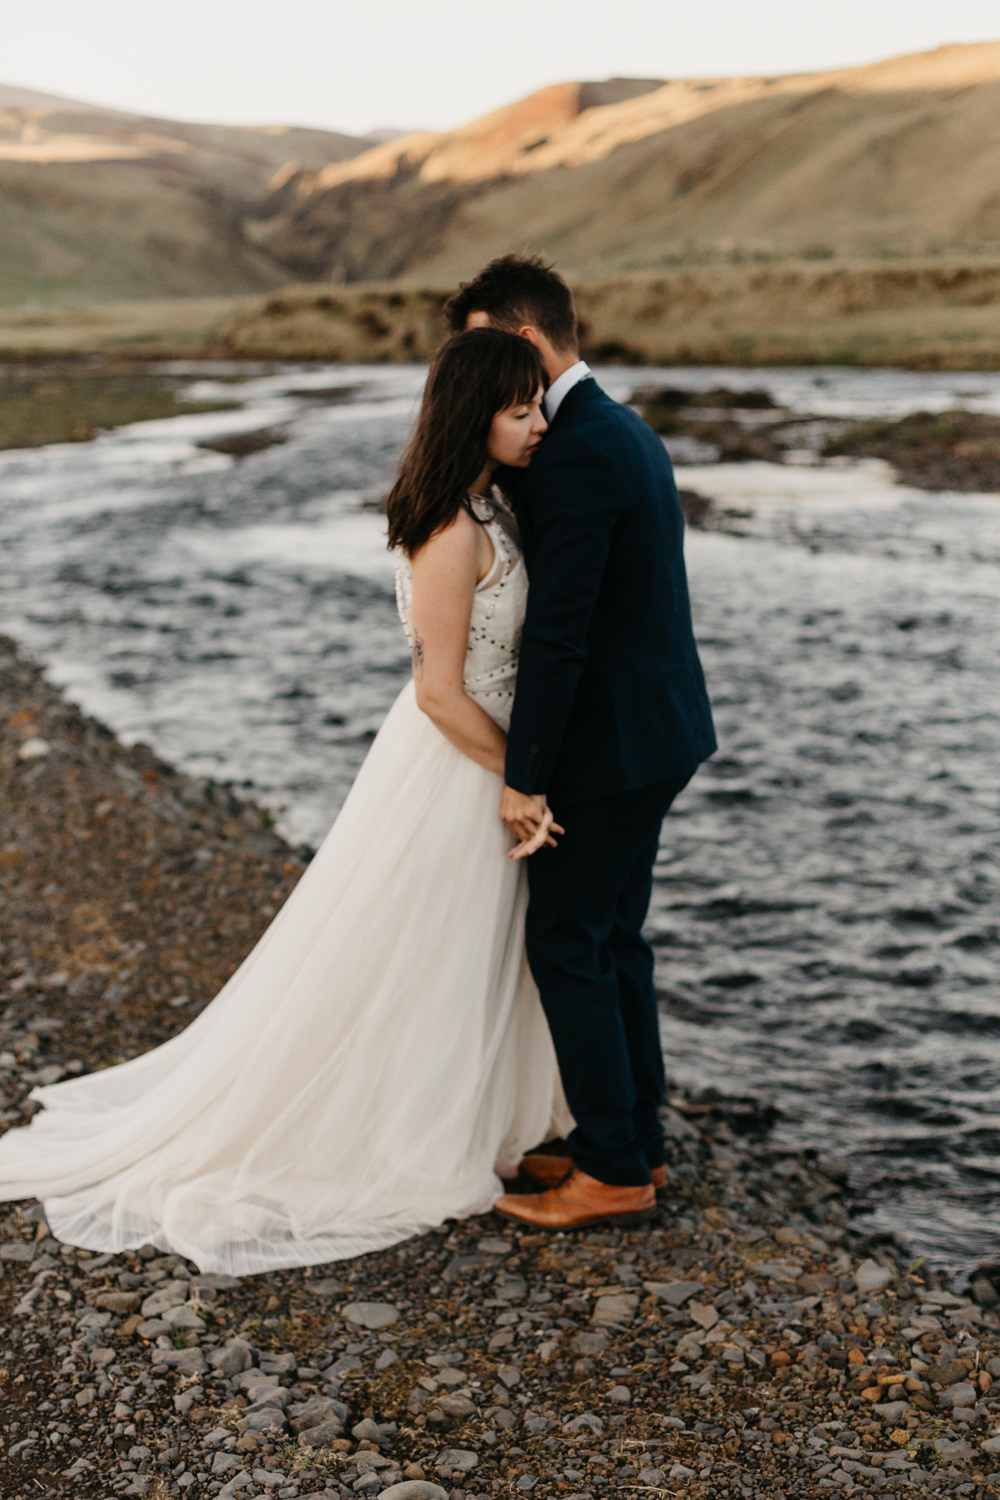 anna szczekutowicz iceland wedding photogapher elopement photographer-141.jpg